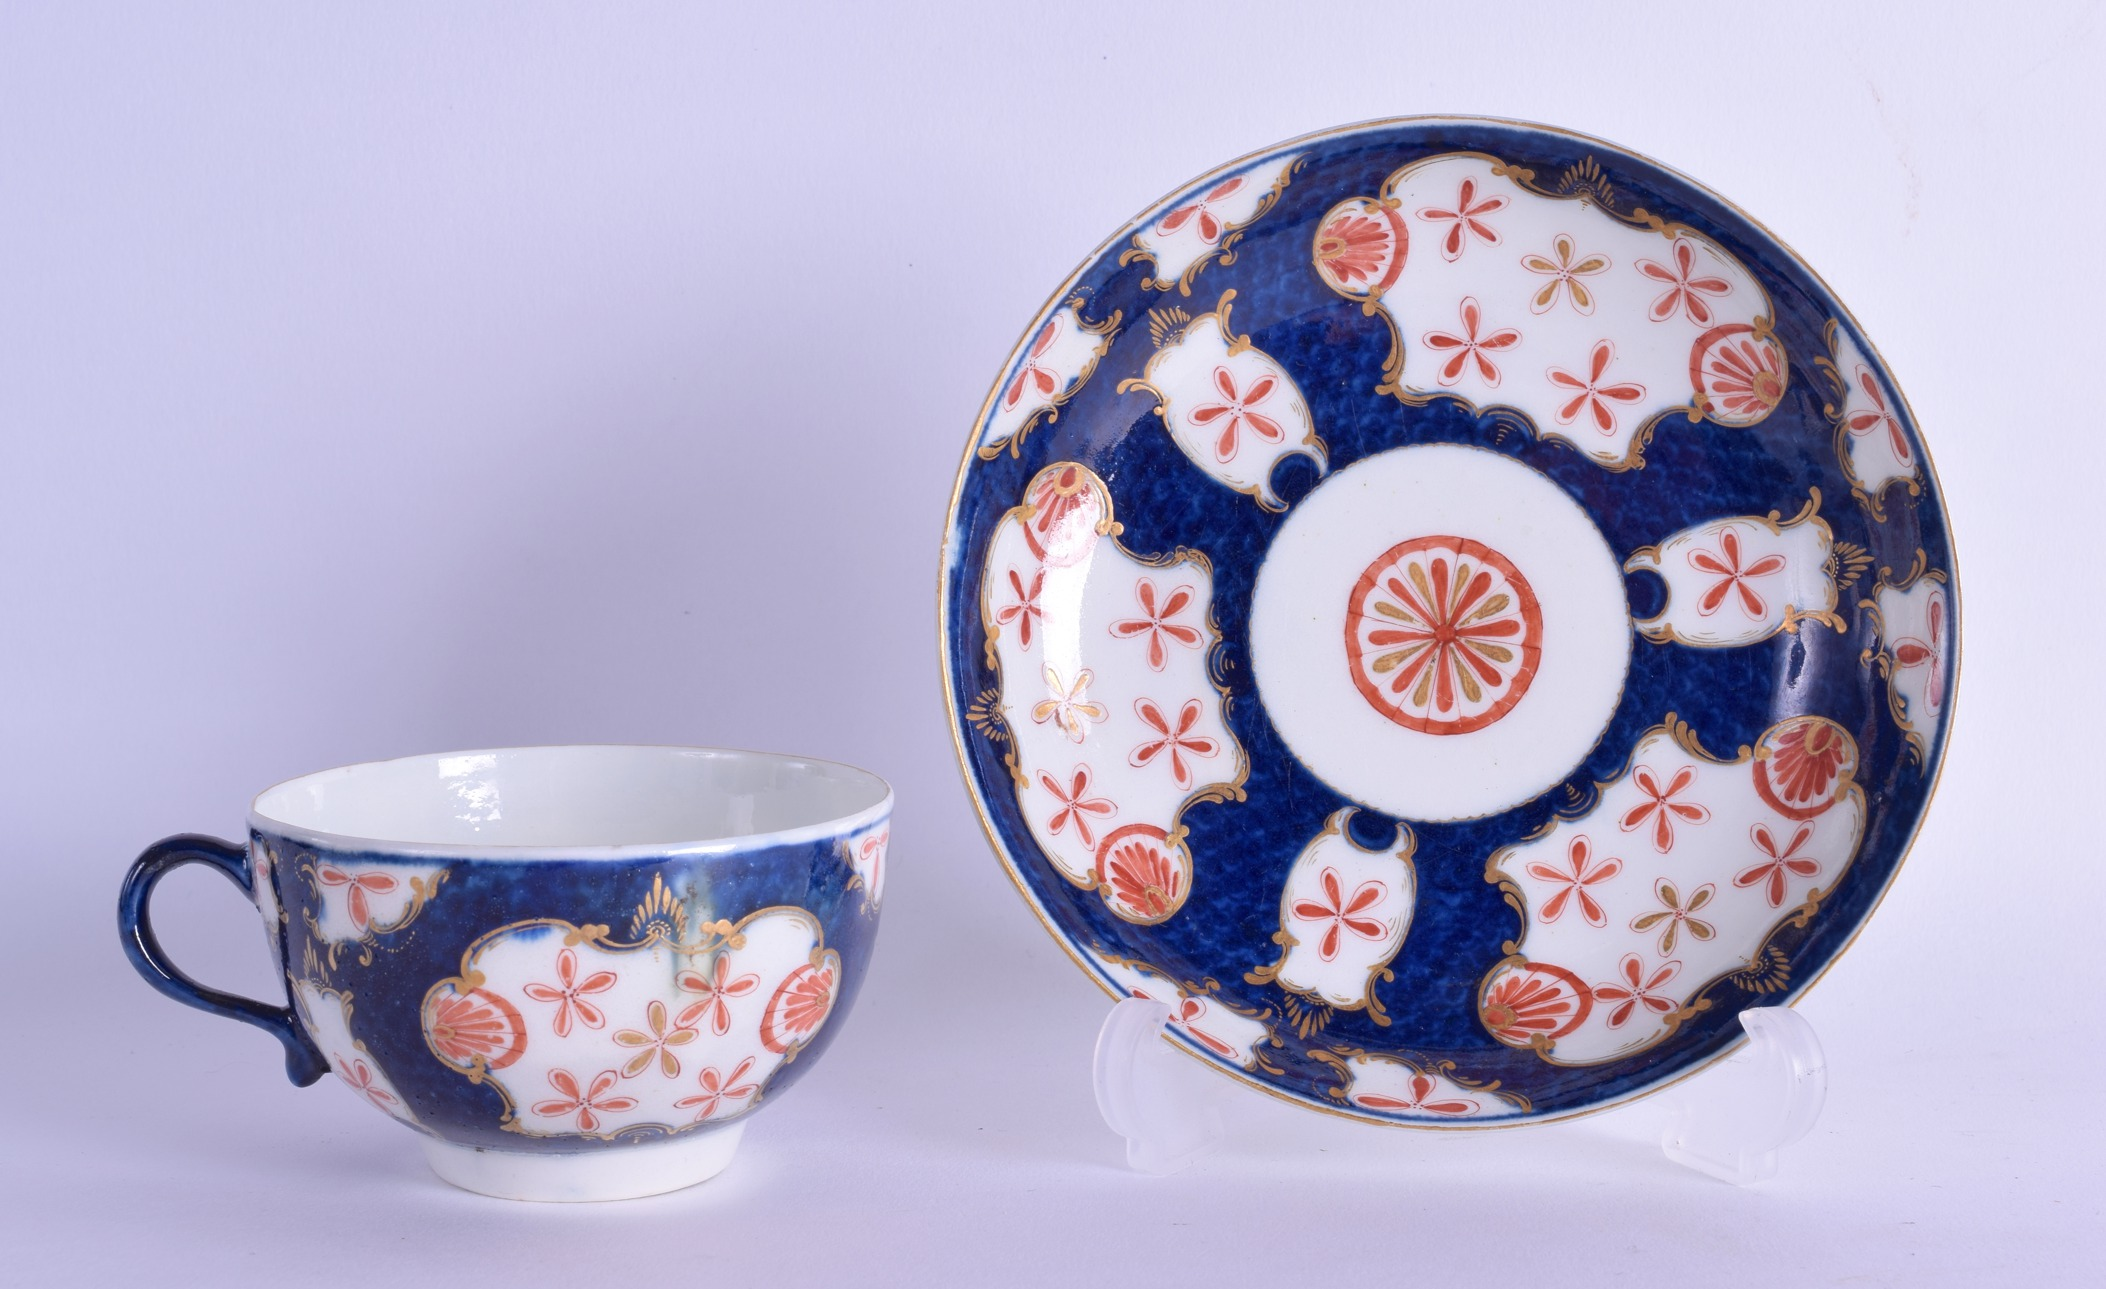 Lot 141 - 18th c. Worcester teacup and saucer painted with the Old Japan Star pattern on a blue scale